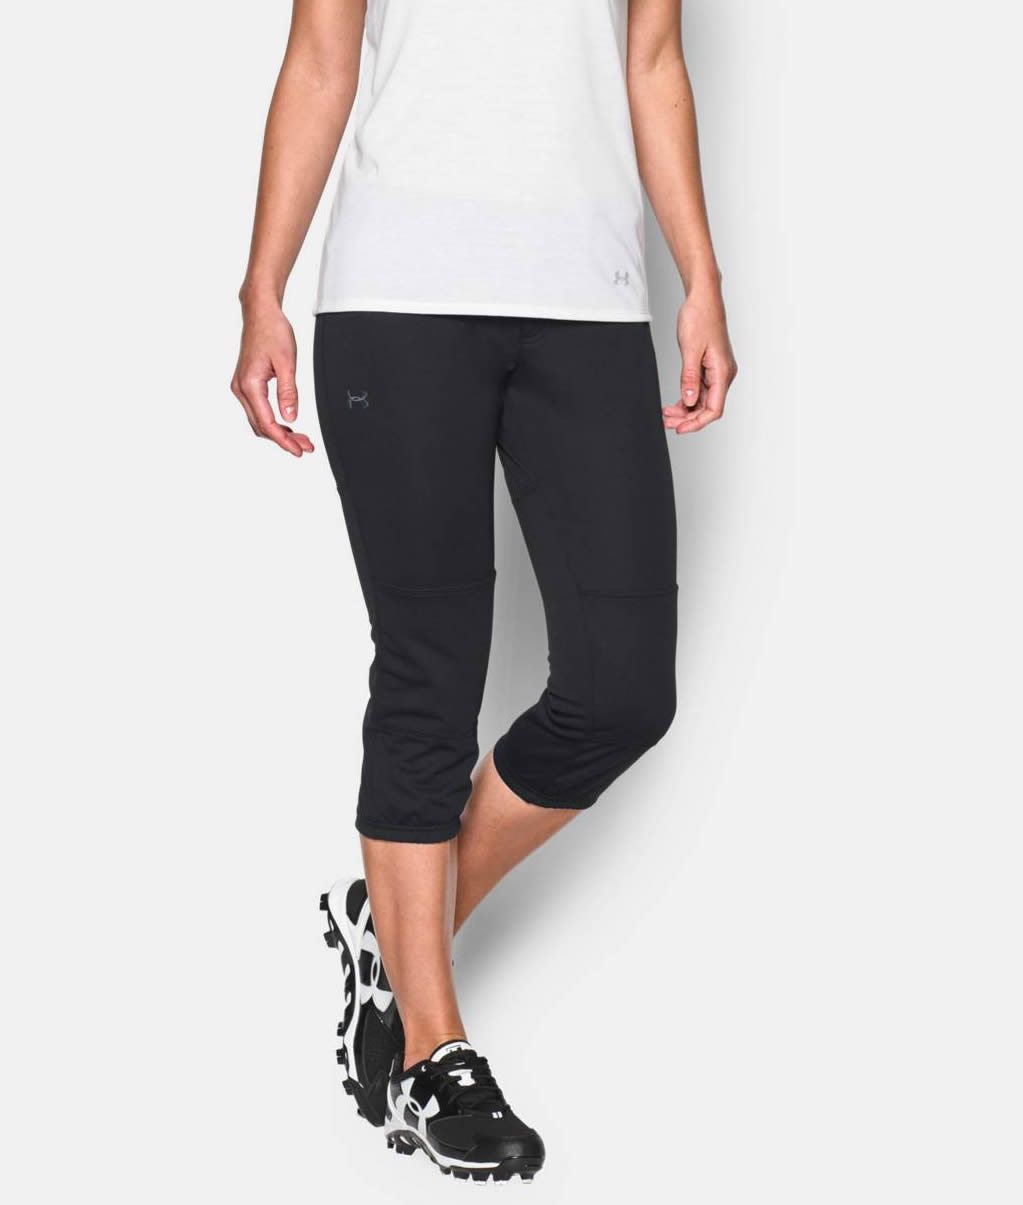 Black Strike Zone Pant By Under Armour